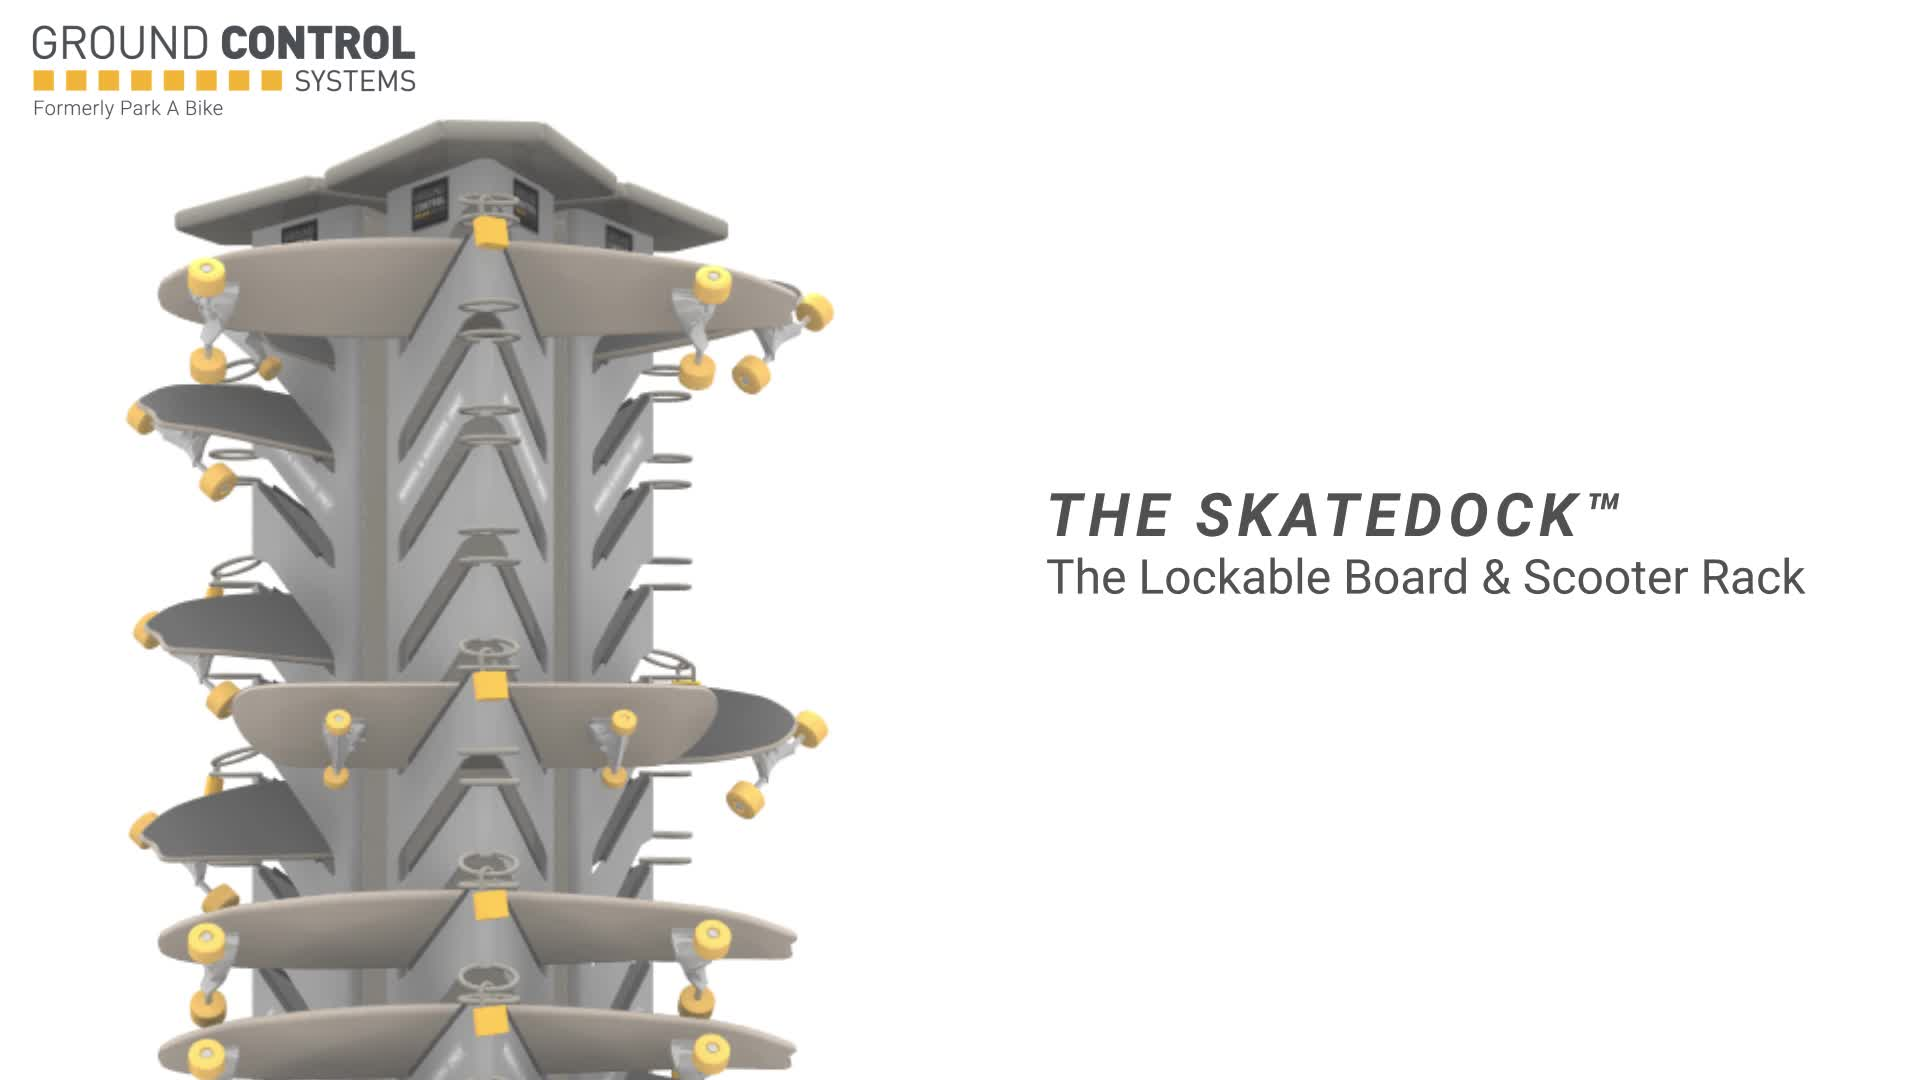 More than 300 schools and universities across the US utilize the innovative SkateDock from Ground Control Systems for lockable board and scooter parking.